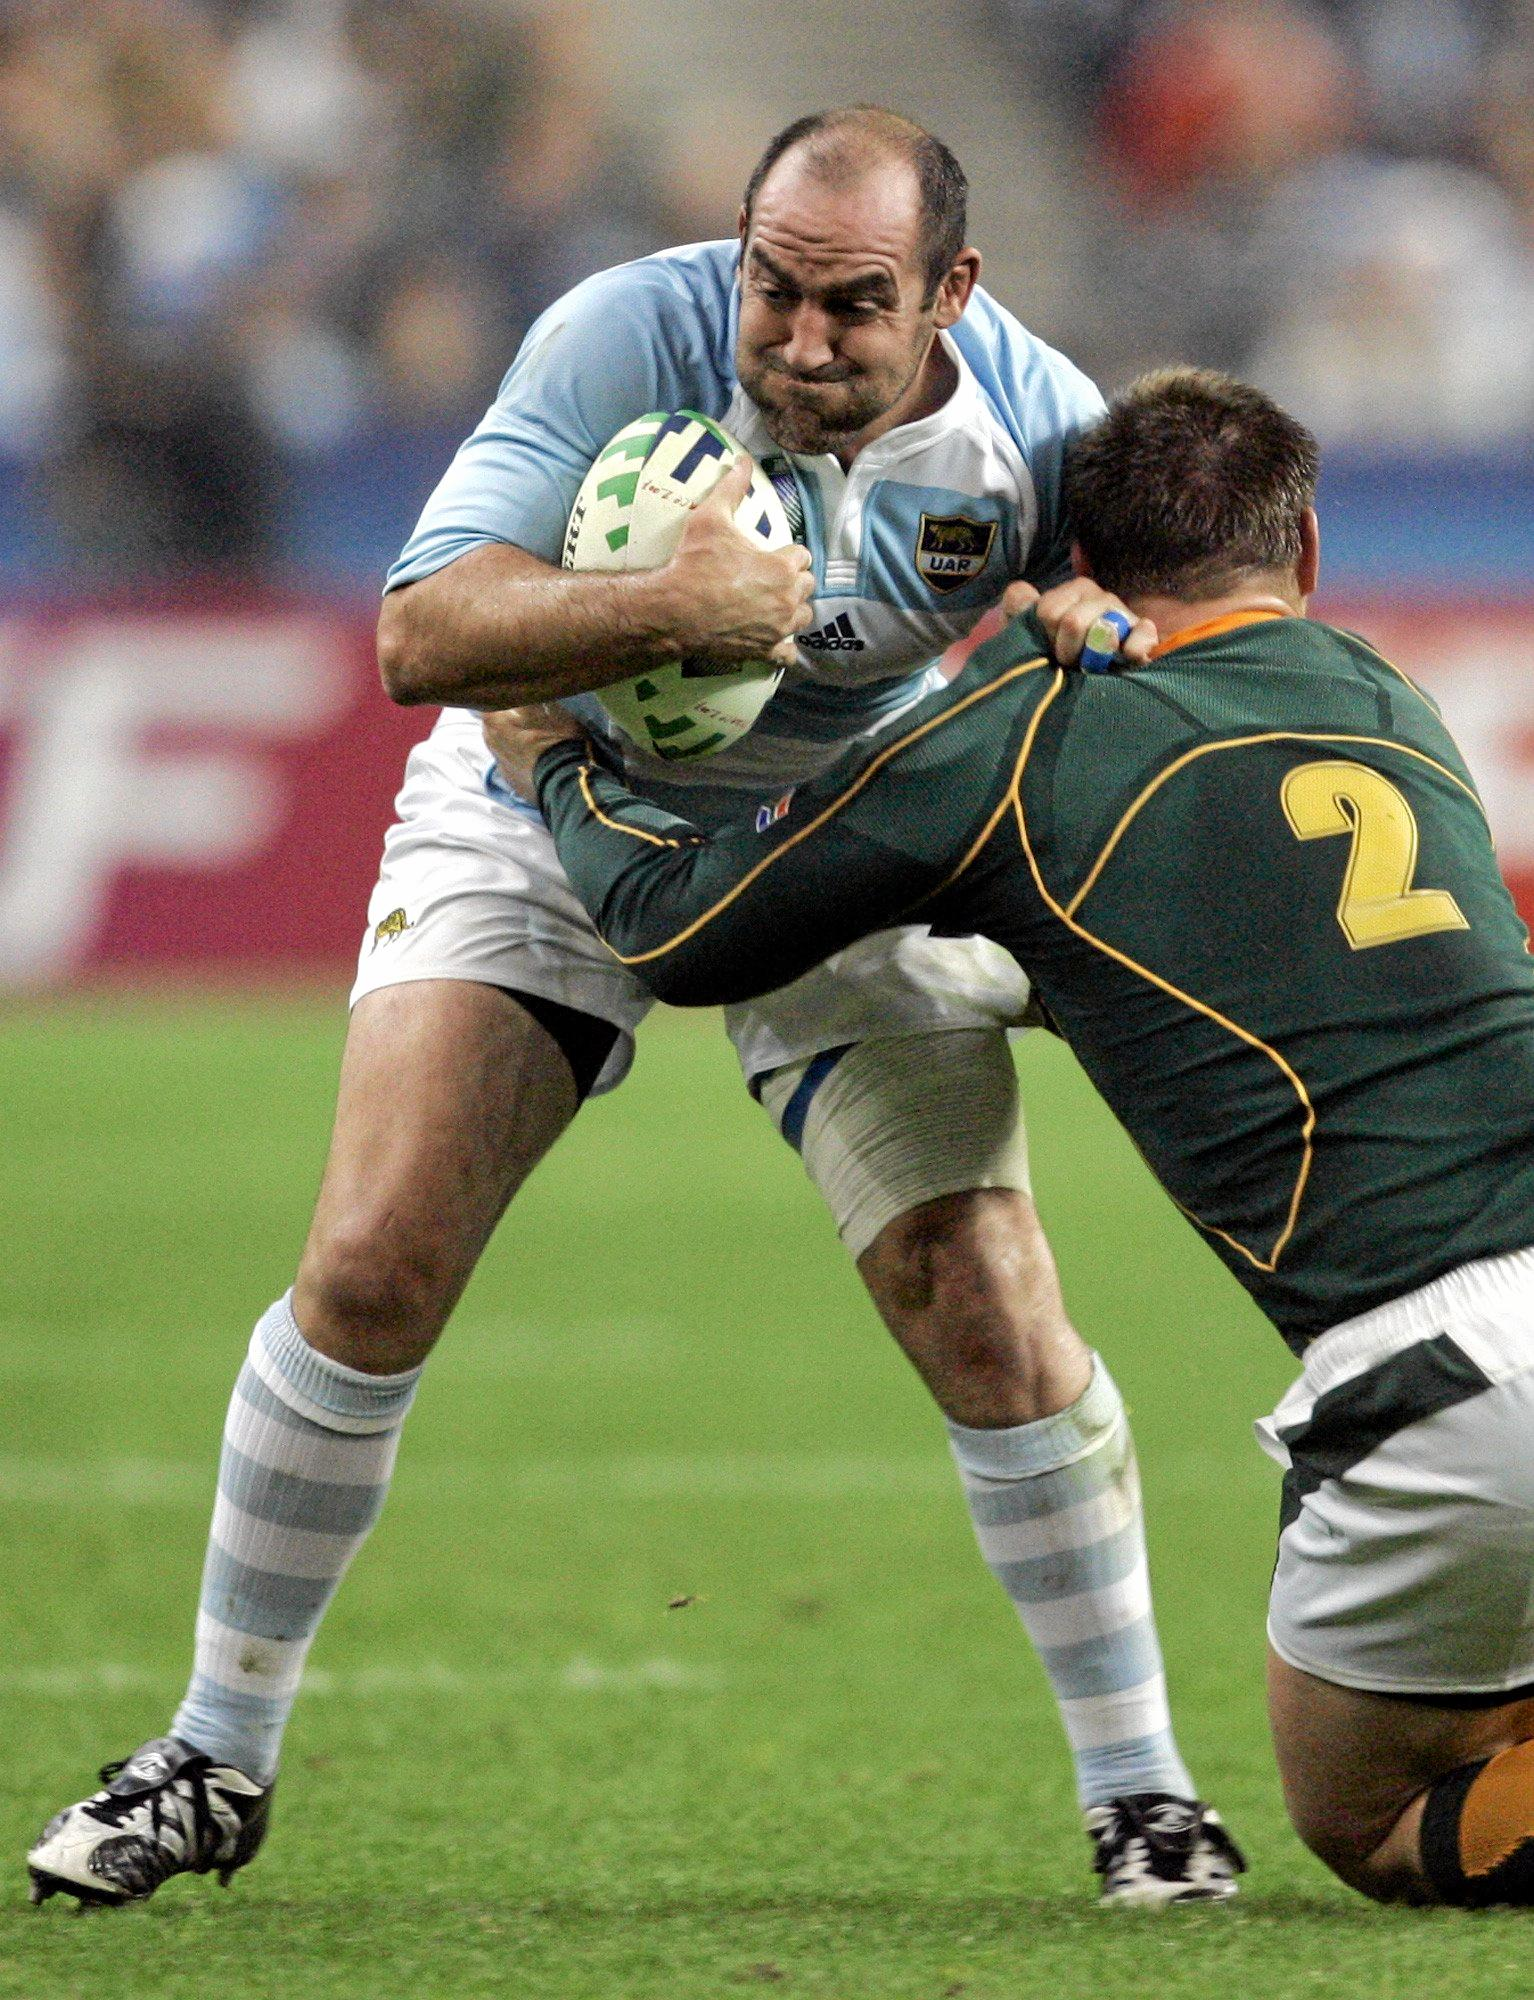 Australia's scrum coach Mario Ledesma is heading back to Argentina